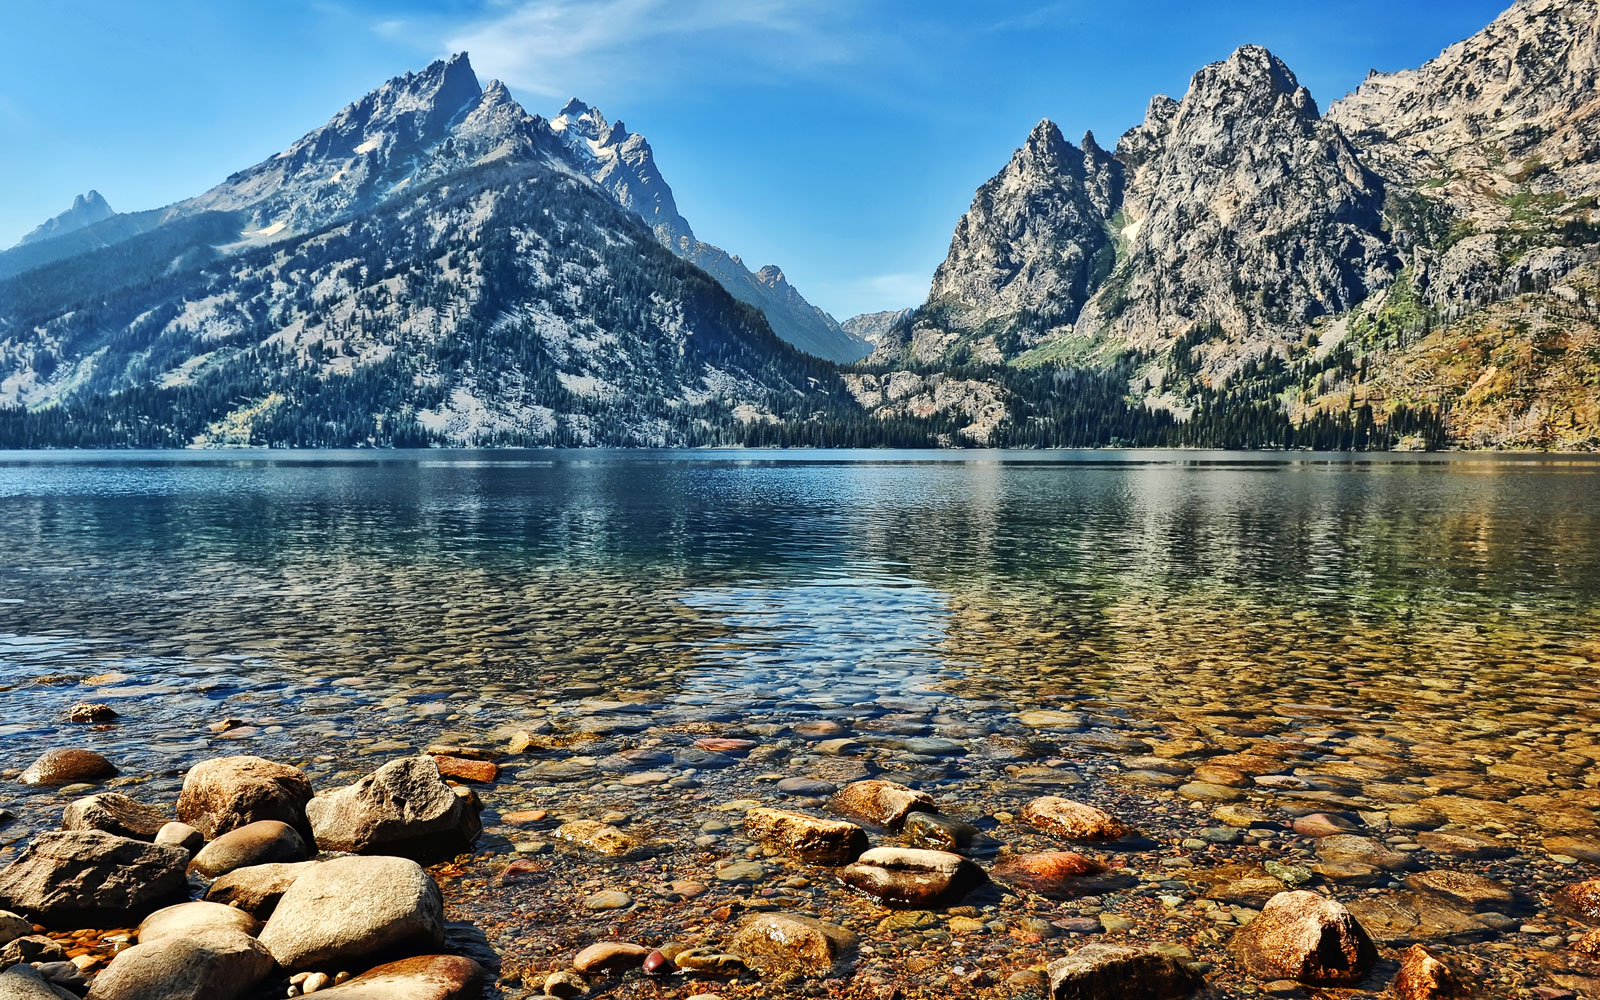 Jenny Lake in Grand Teton National Park, WY